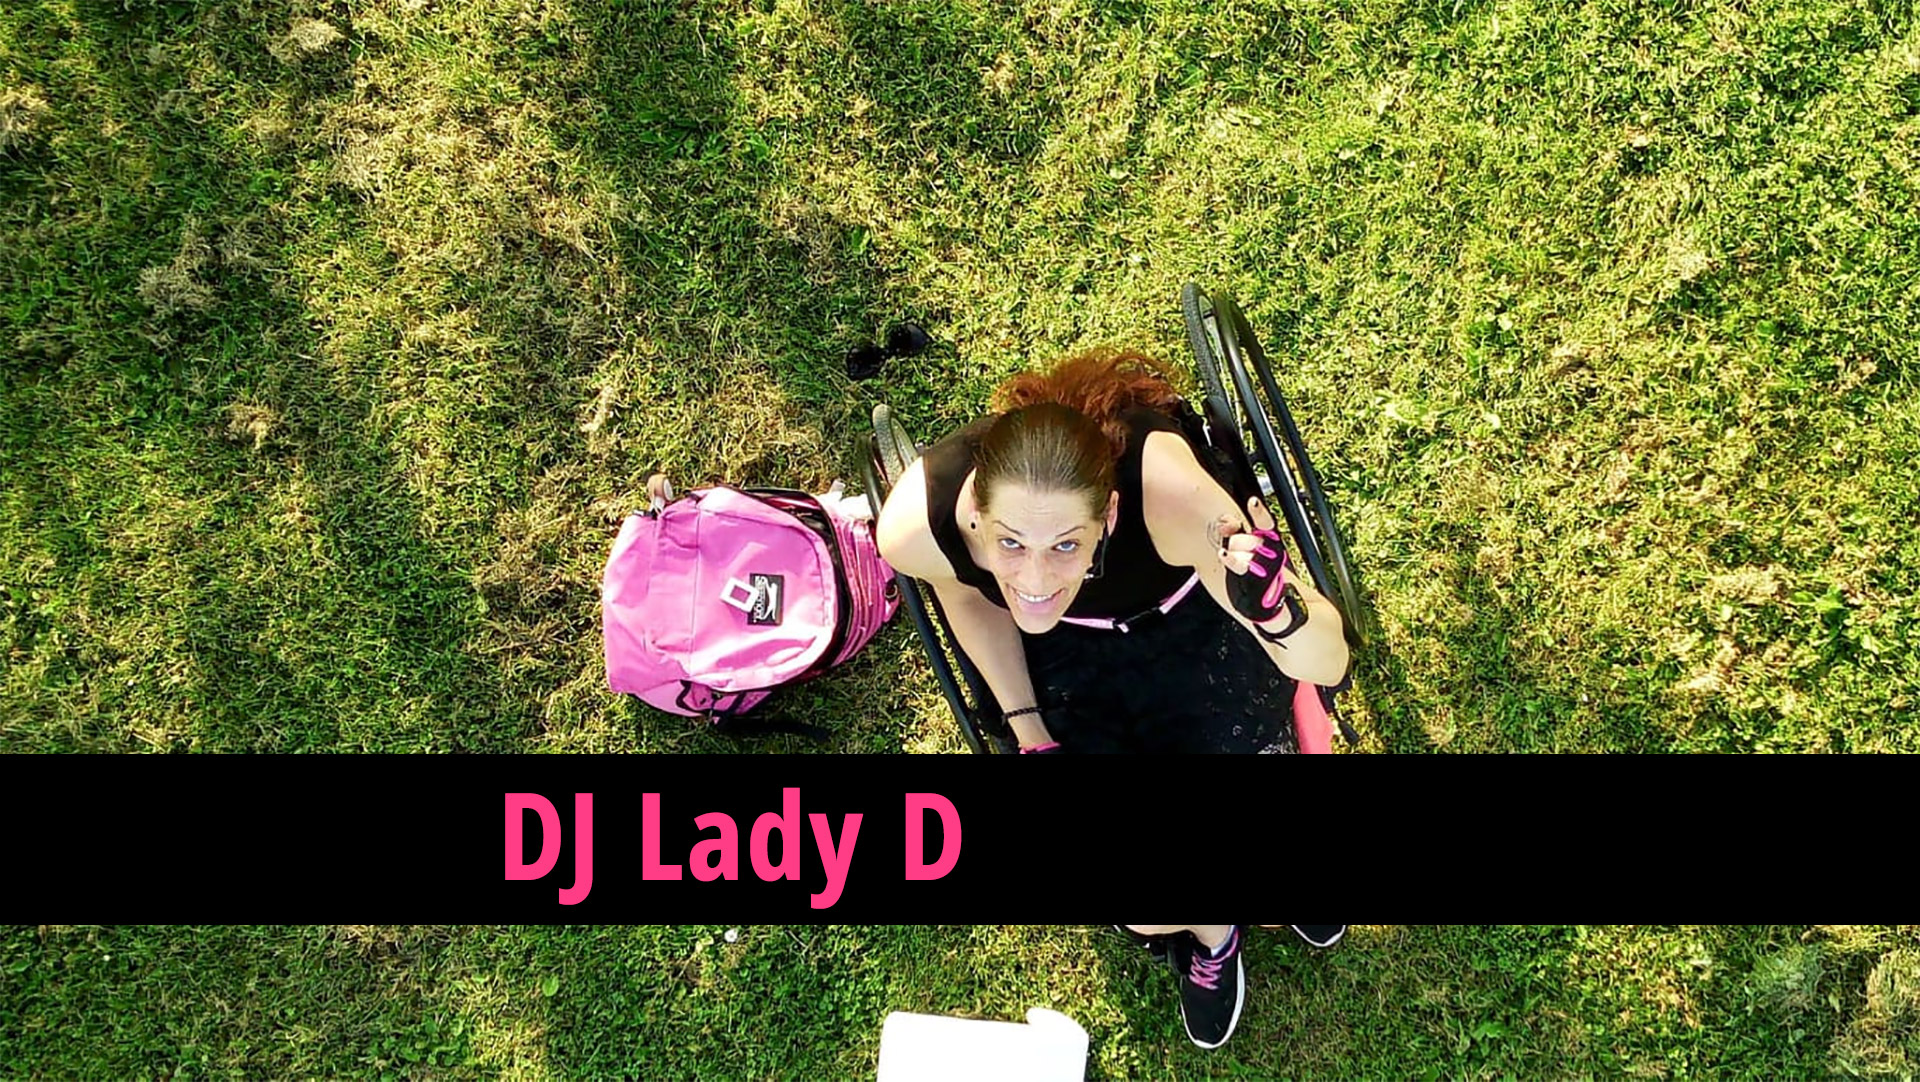 Lady D: Being an Inspiration to Others While Mixing Multiple Wheels